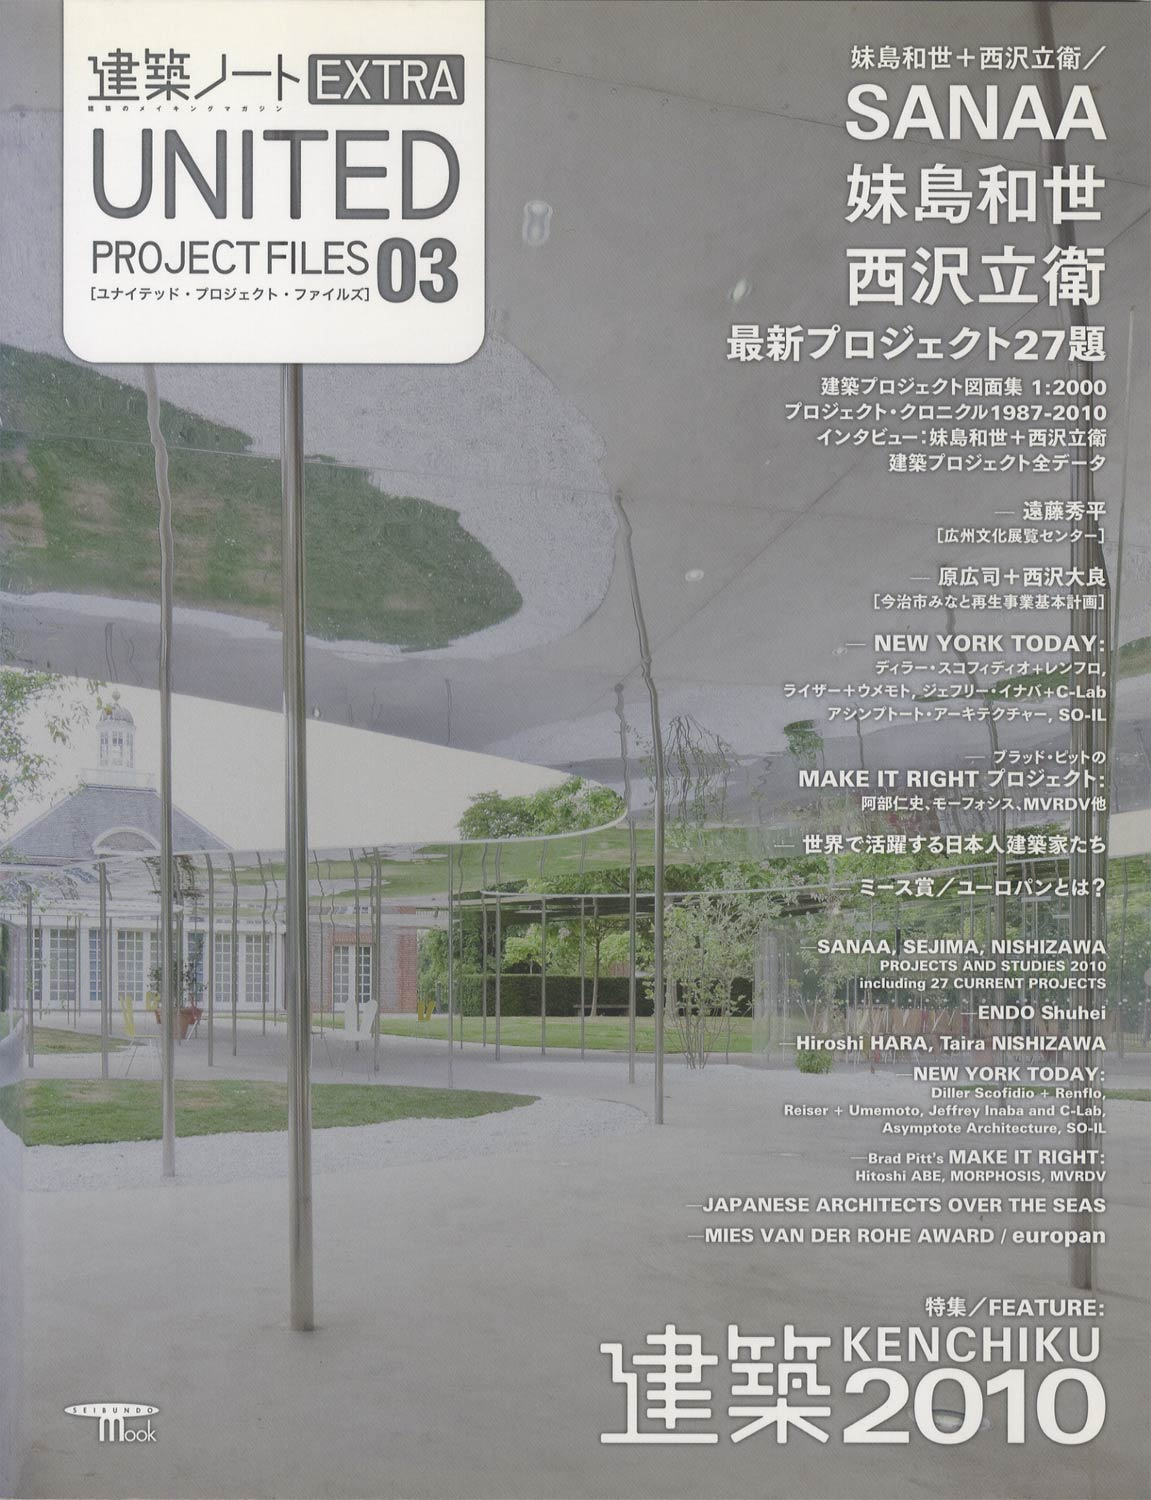 UNITED PROJECT FILES 03 建築ノート EXTRA